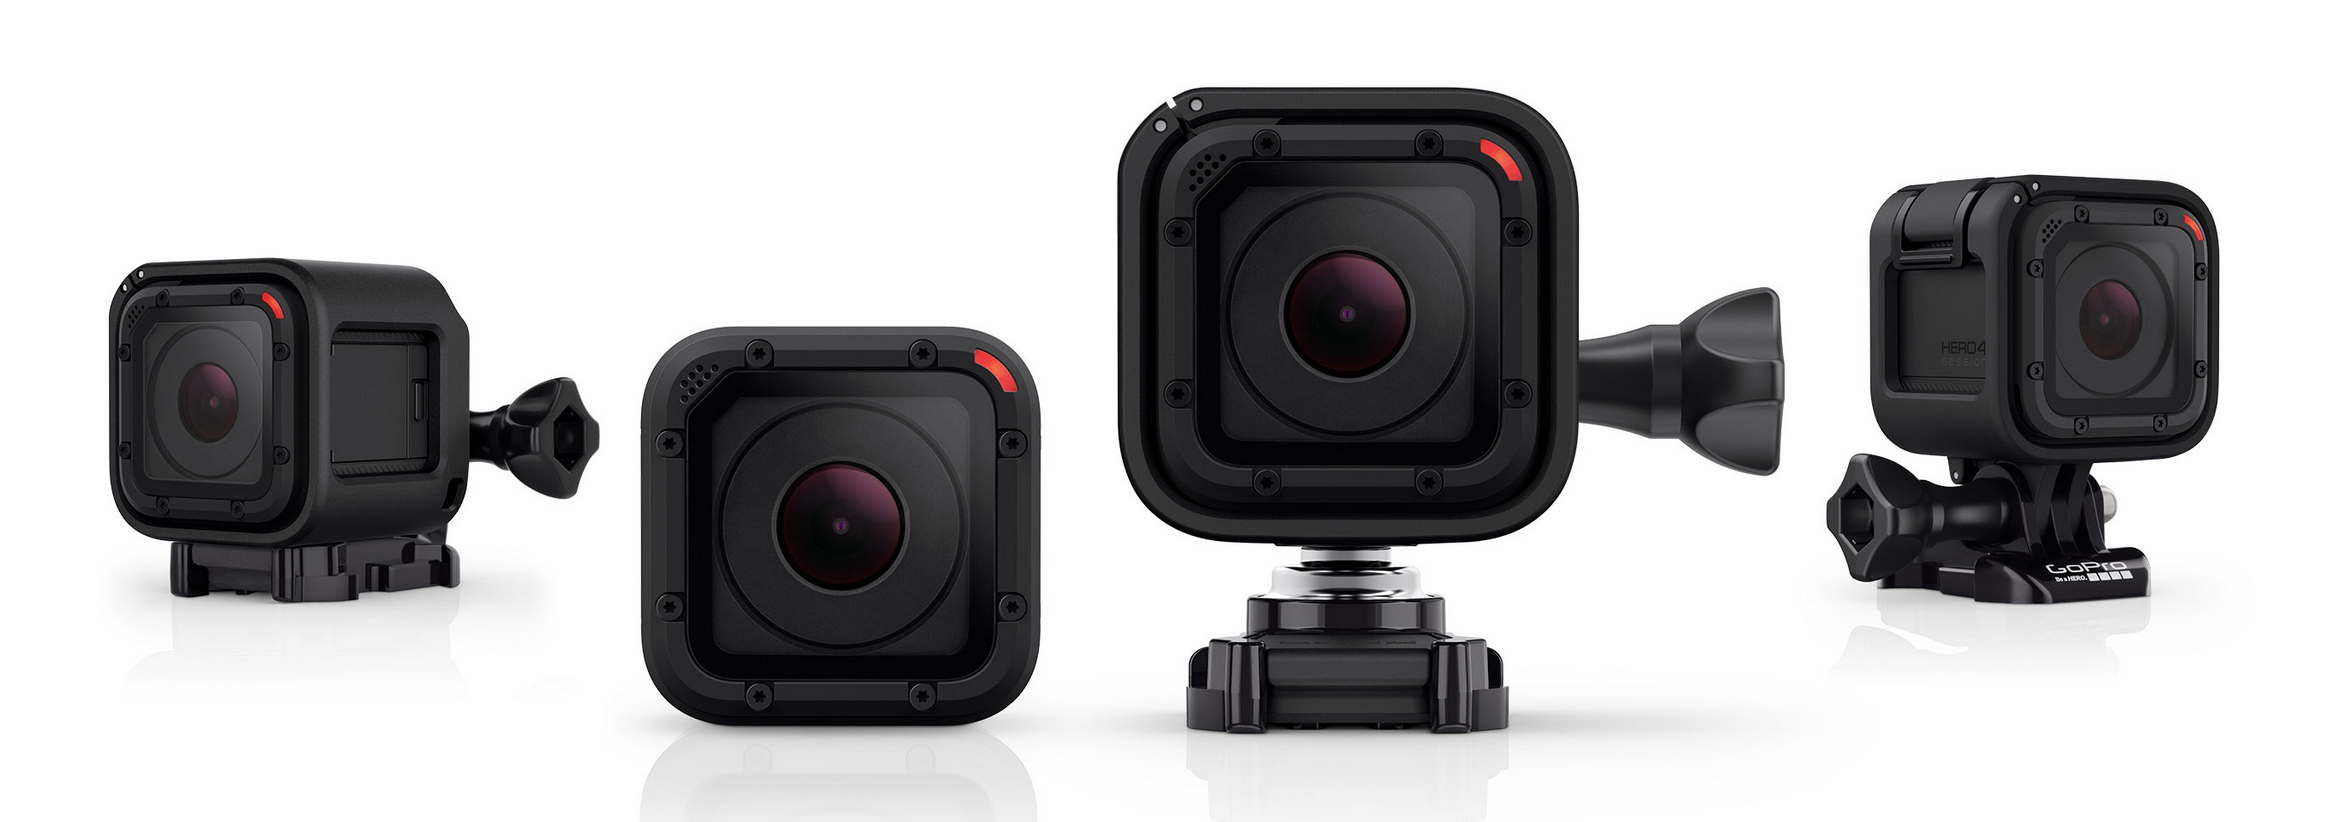 New GoPro Hero4 Session Action Camera